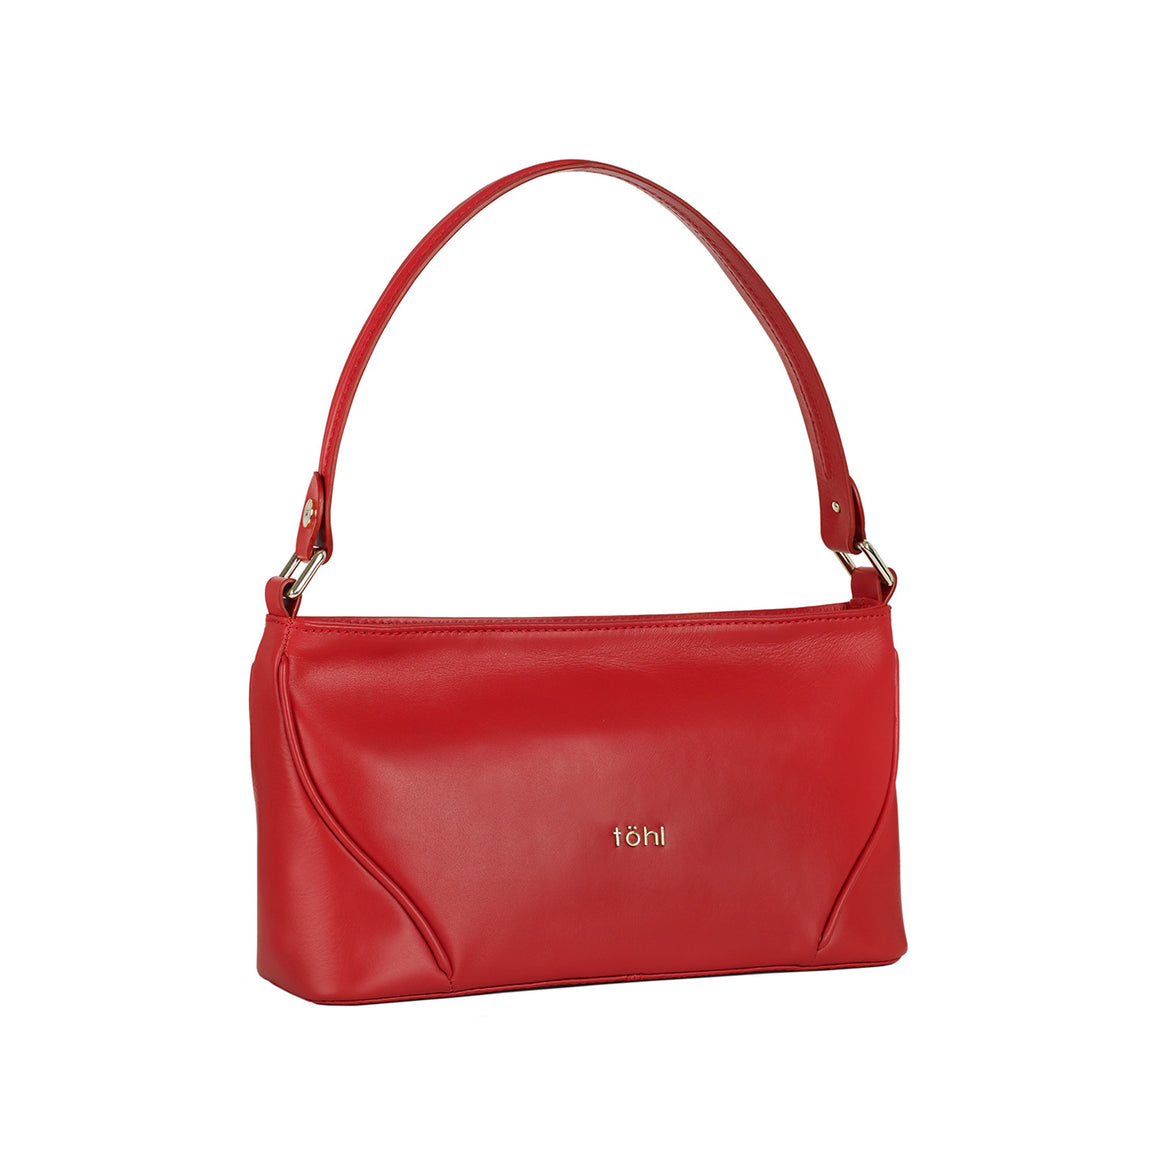 HH 0008 - TOHL NICOLE WOMEN'S SHOULDER BAGUETTE - SPICE RED